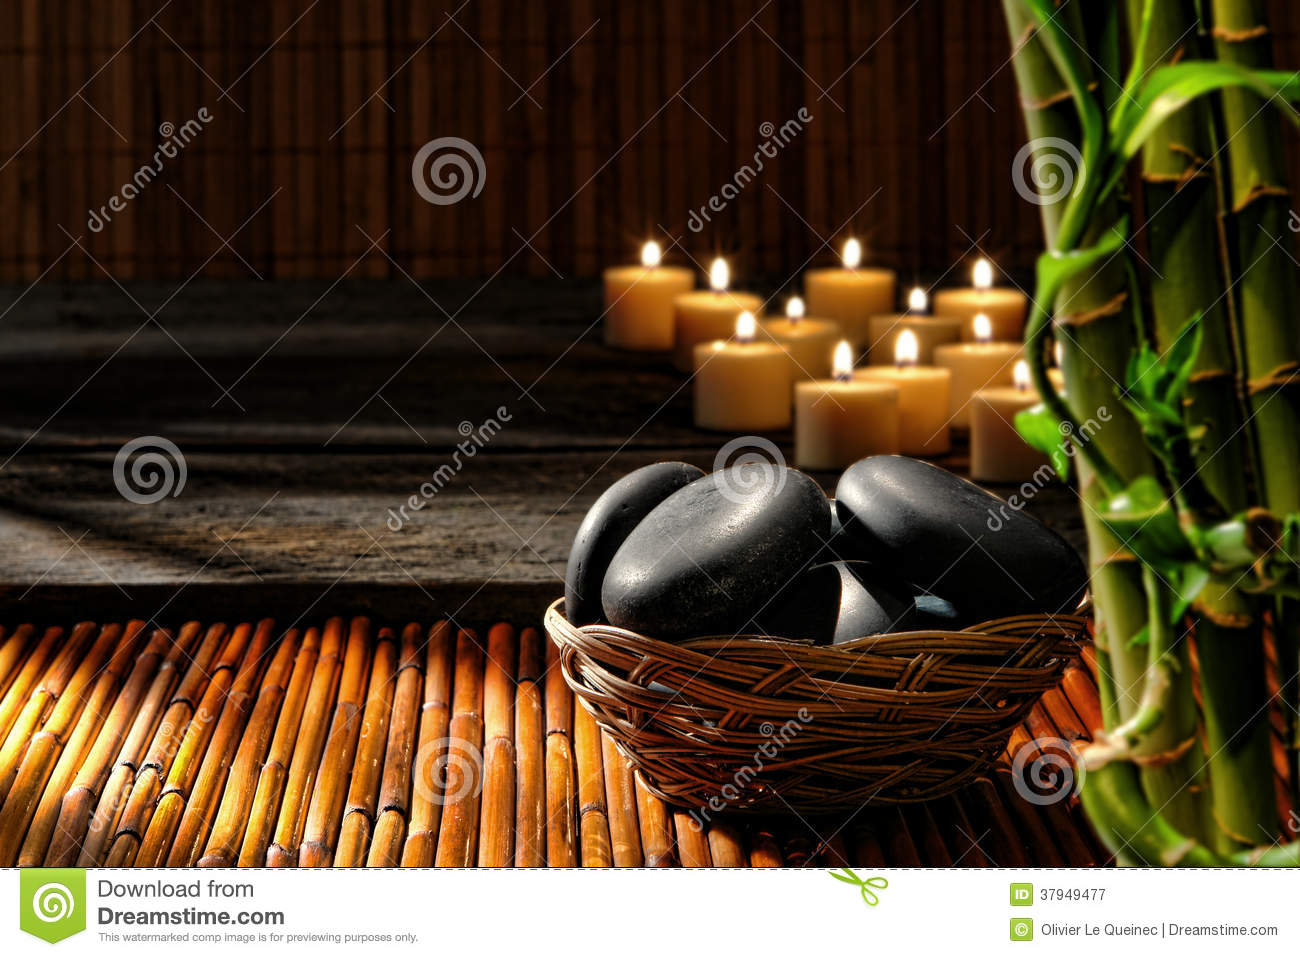 Massage Stones In Basket In Wellness Holistic Spa Stock